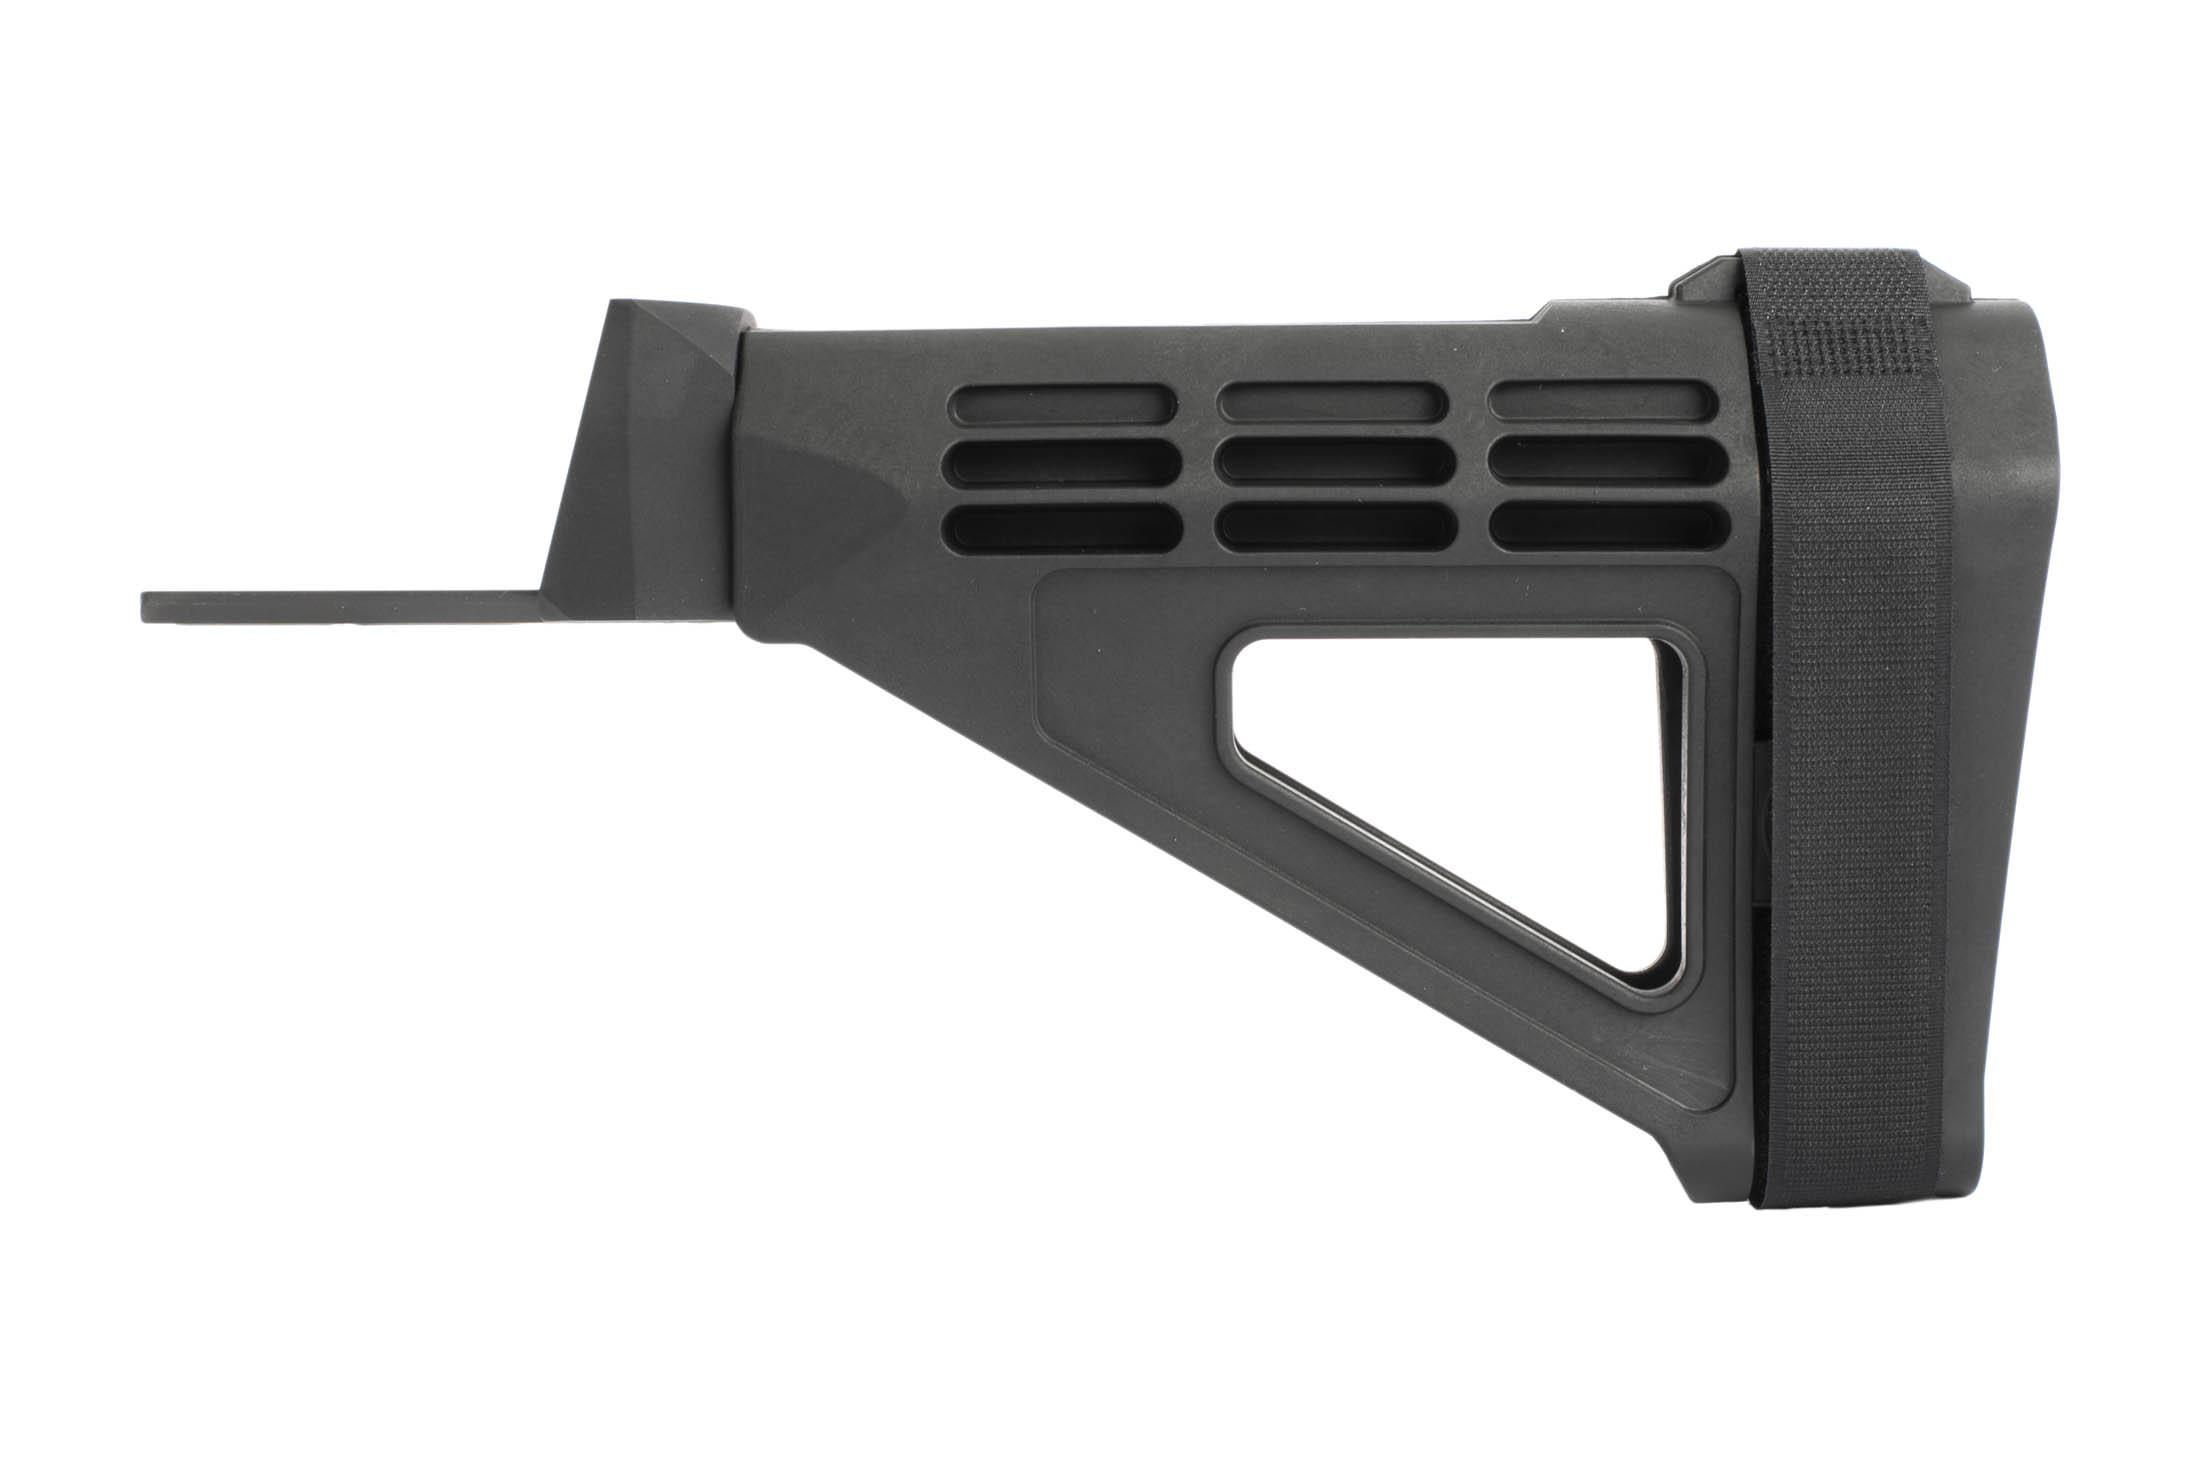 SB Tactical pistol stabilizing arm brace fits AK-47 and AK74 pistols and is ATF approved